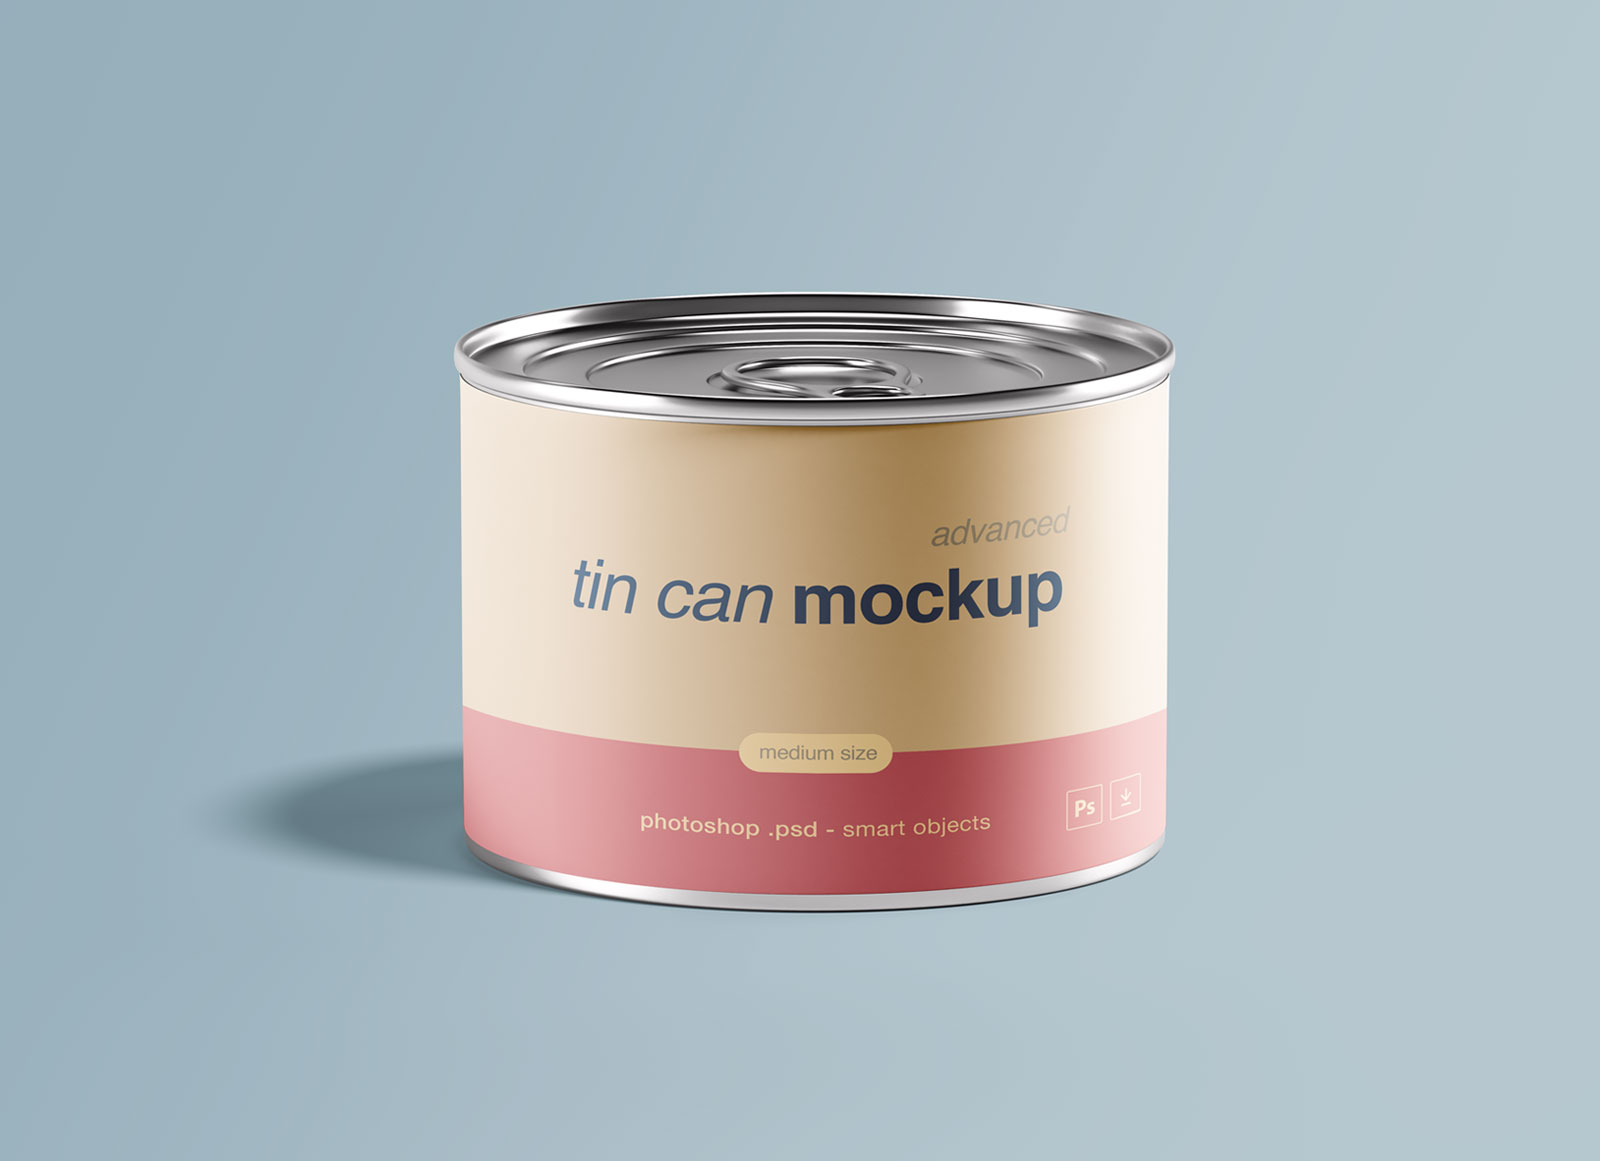 Free-medium-Size-Food-Tin-Can-Mockup-PSD